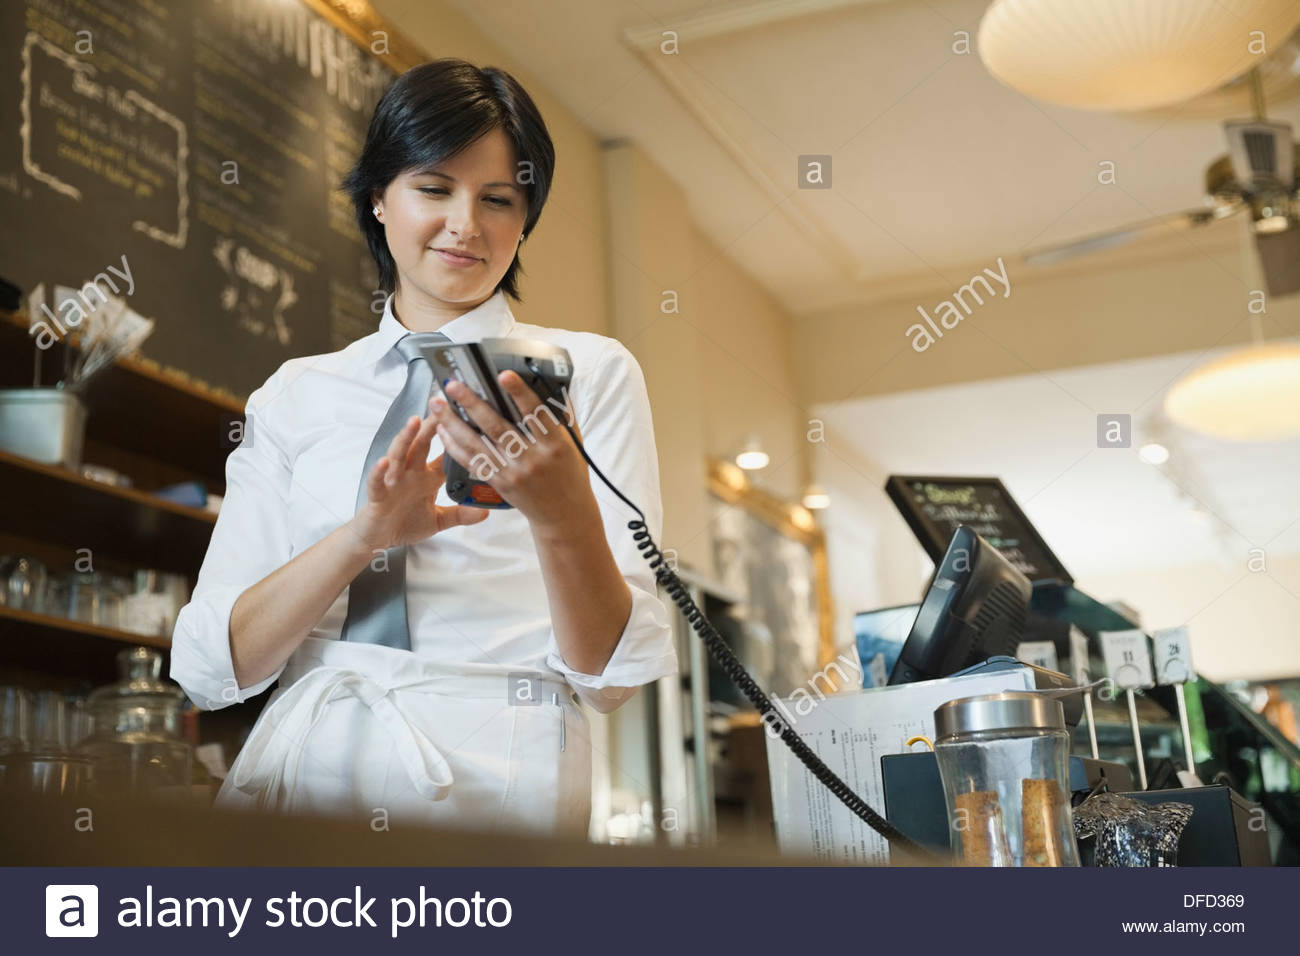 Waitress using credit card terminal in cafe - Stock Image